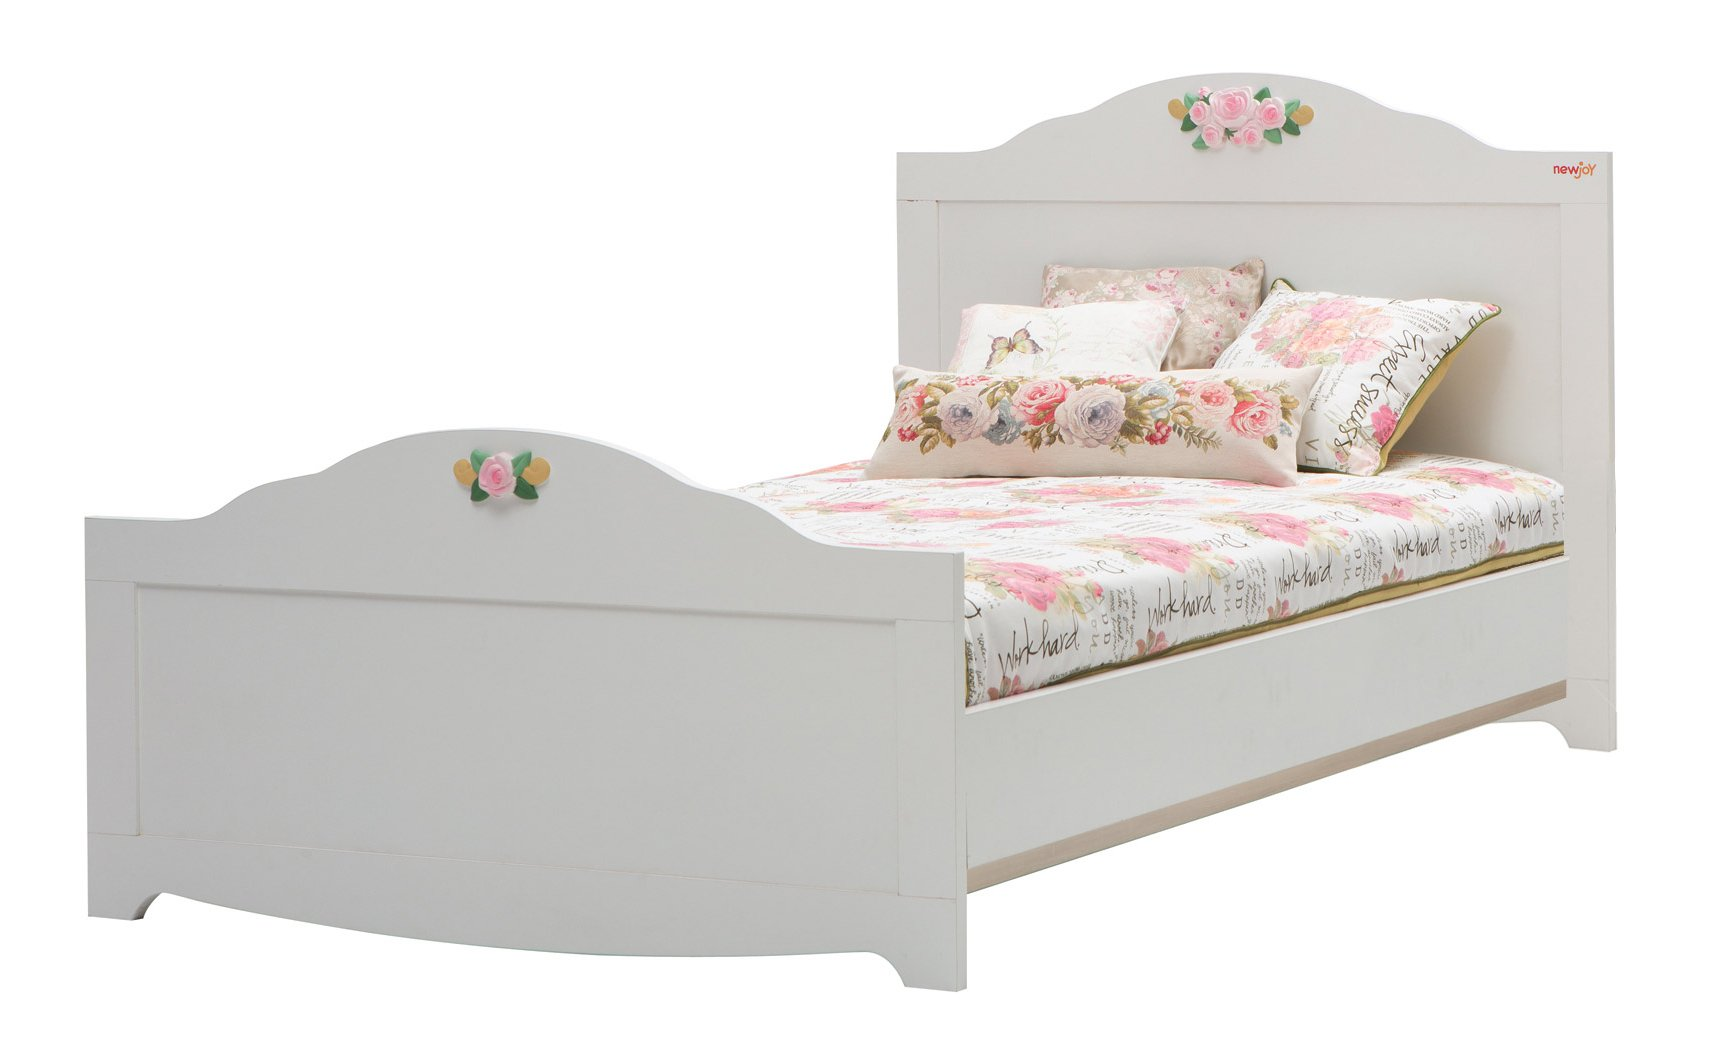 Newjoy Laura Children S Night Small Double Bed